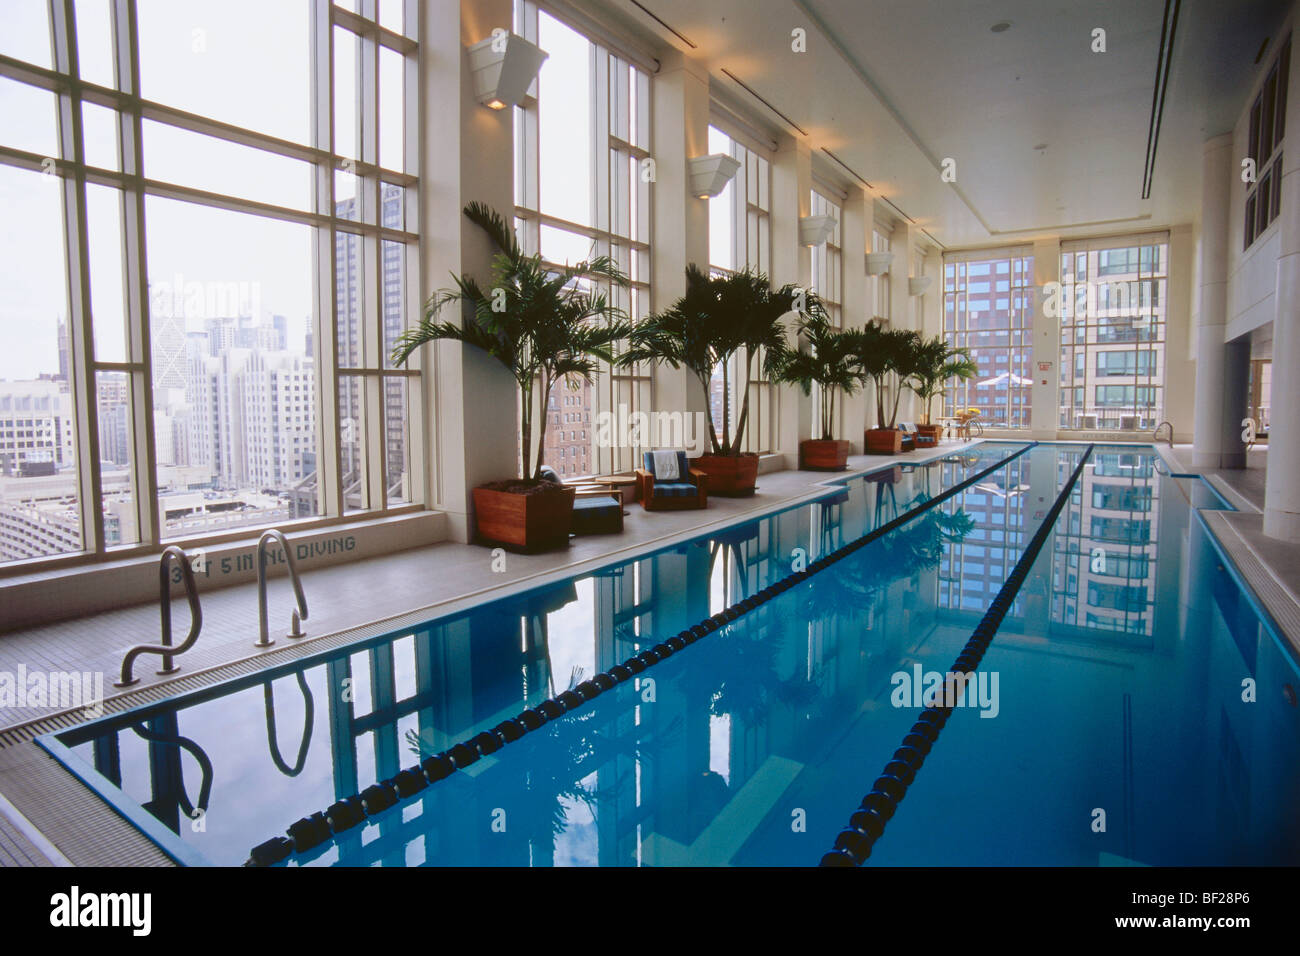 Pool and spa area at hotel peninsula chicago illinois for Chicago area spa resorts